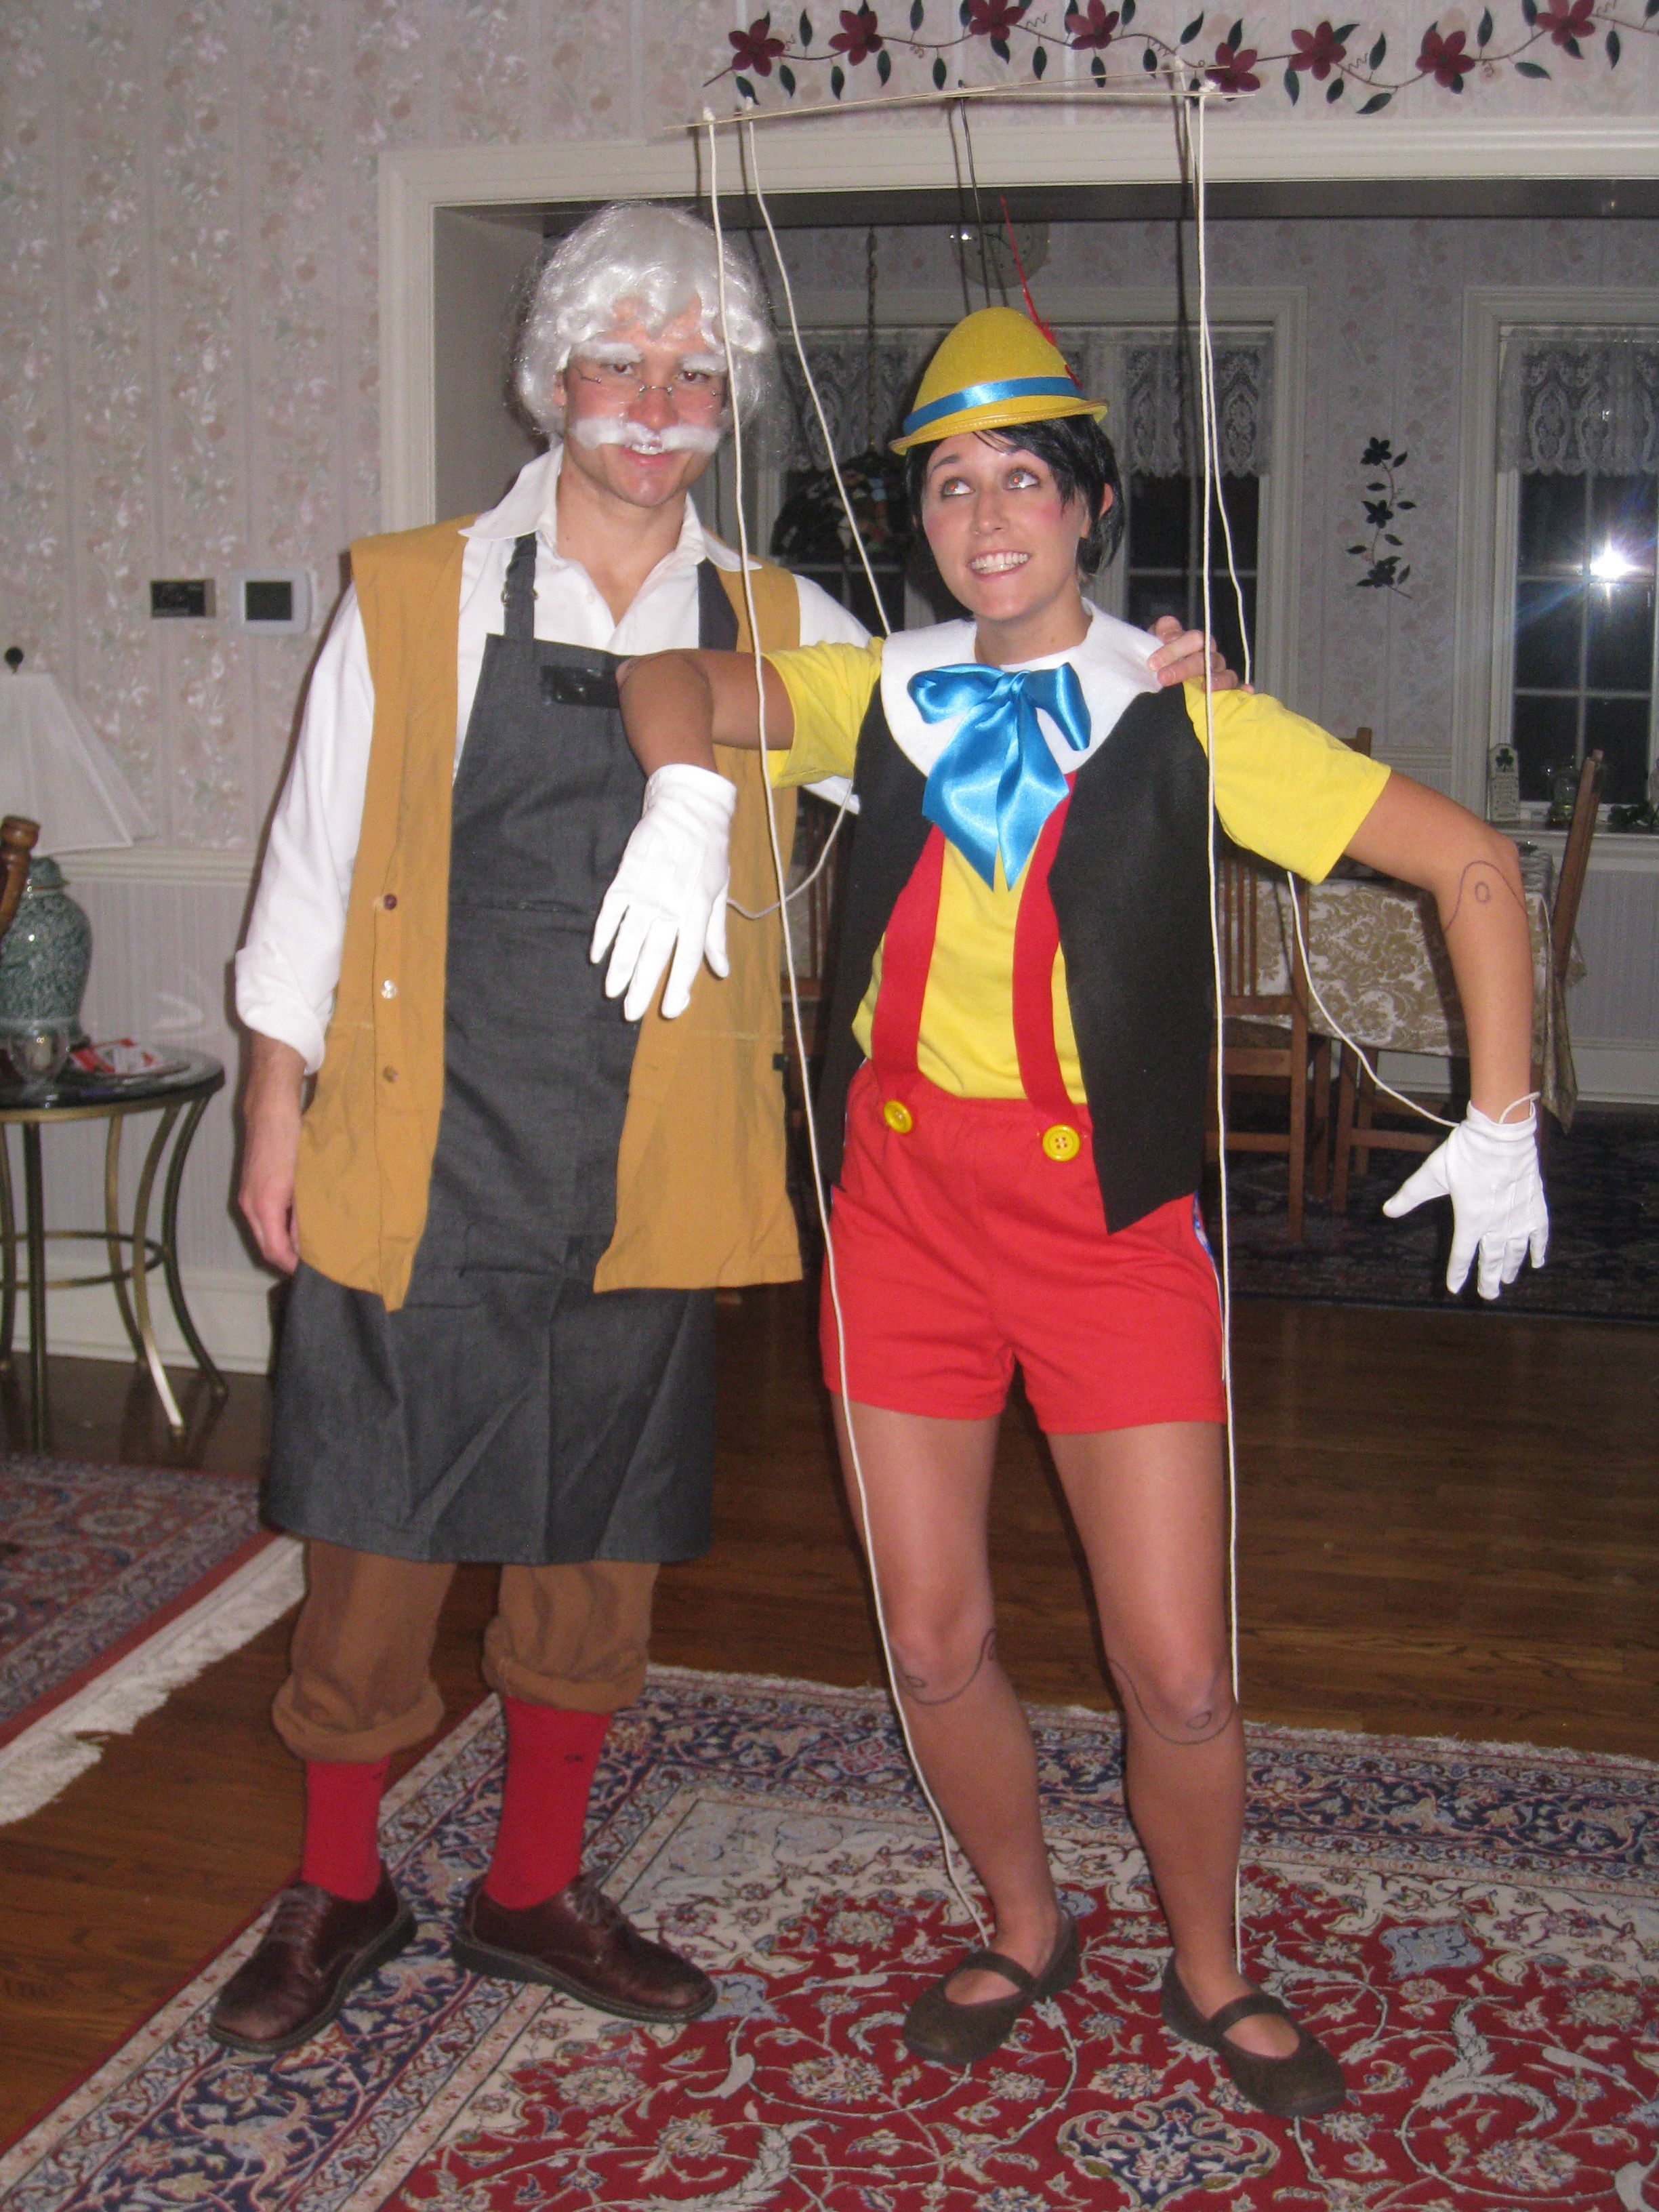 Pinocchio and Gepetto | My costumes | Pinterest | Pinocchio and ...